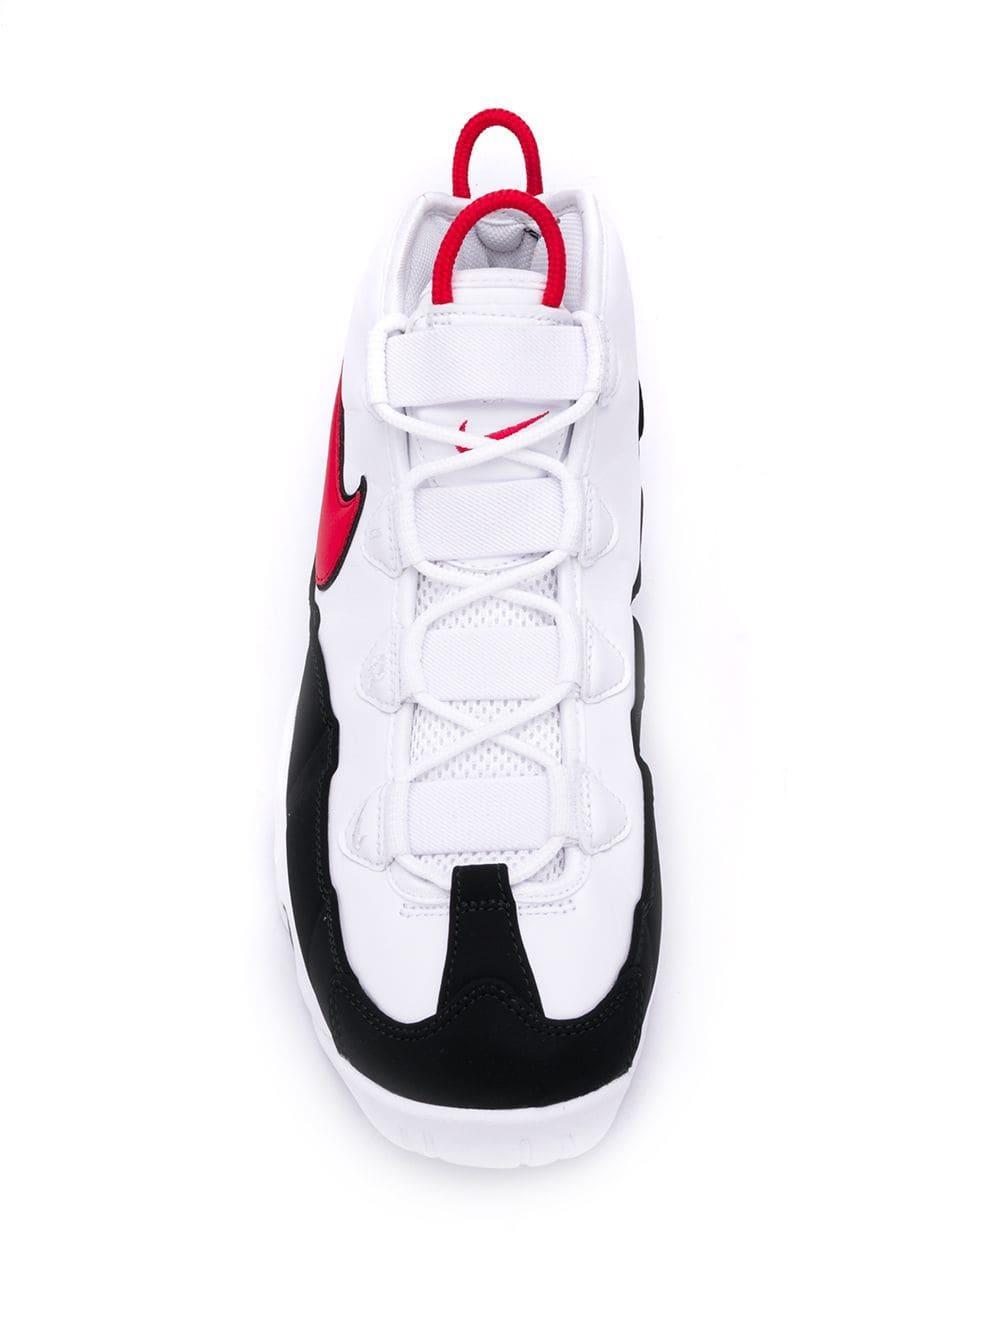 Nike Synthetic Air Max Uptempo '95 in White/Red (White) for Men - Lyst